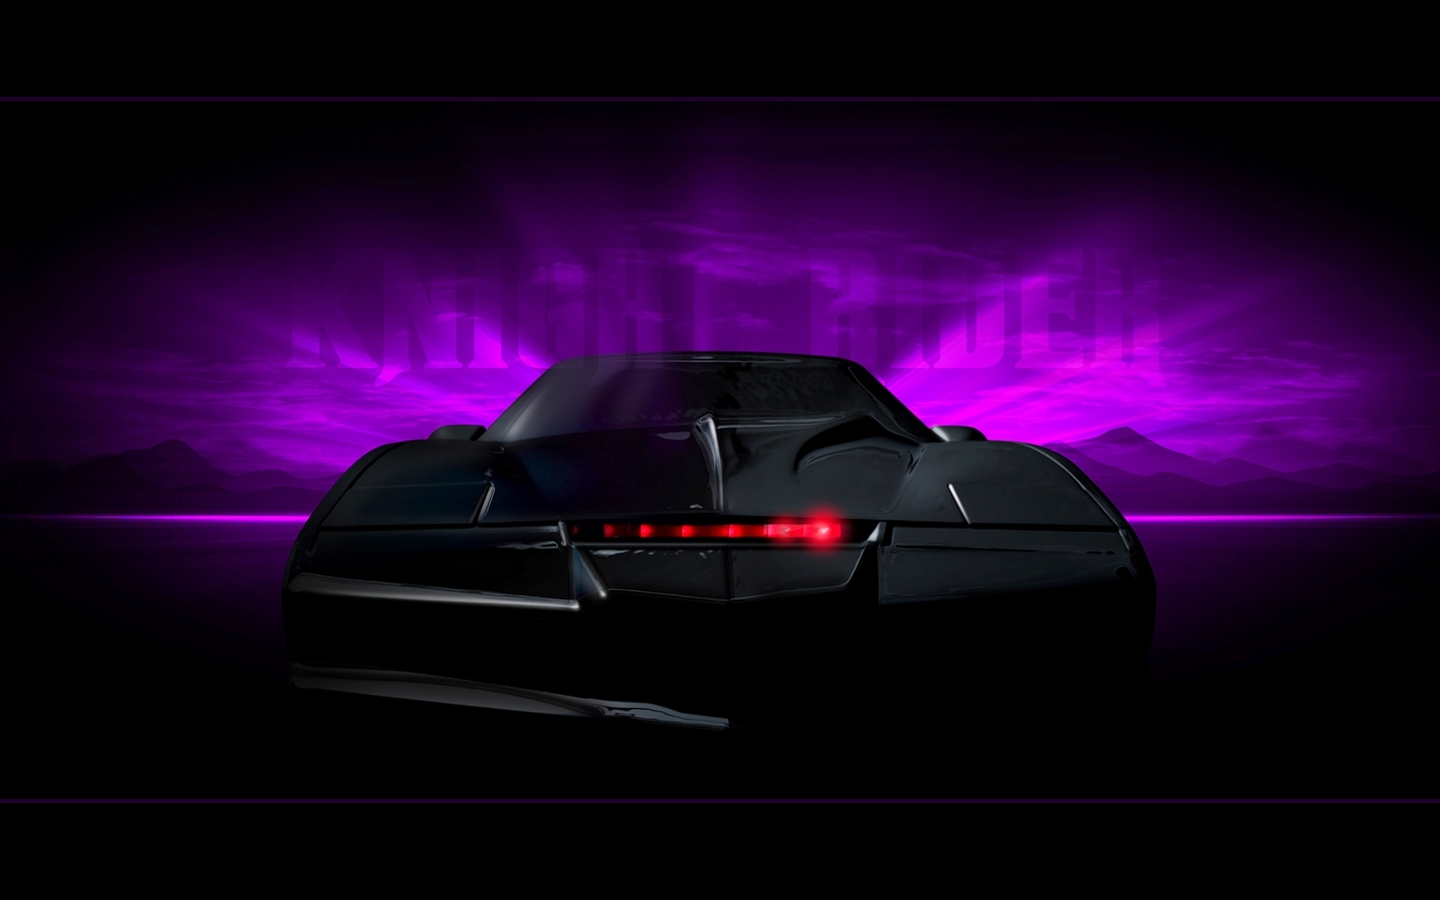 Knight Rider Wallpapaer by eNeR 1440x900